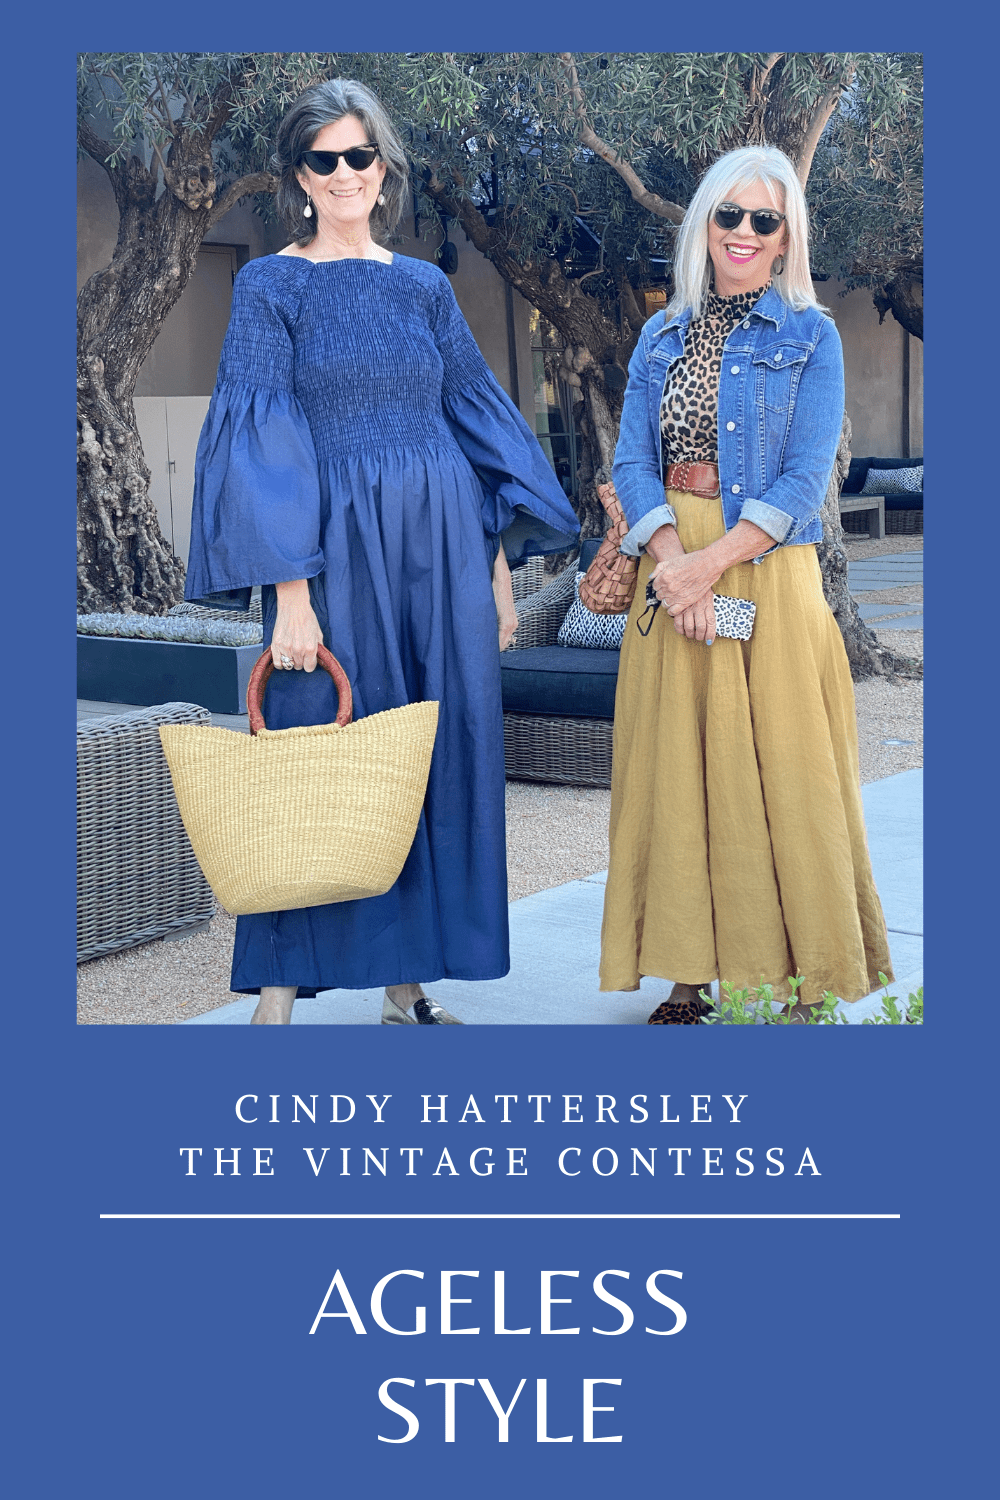 Ageless Style Cindy Hattrersley and the Vintage Contessa